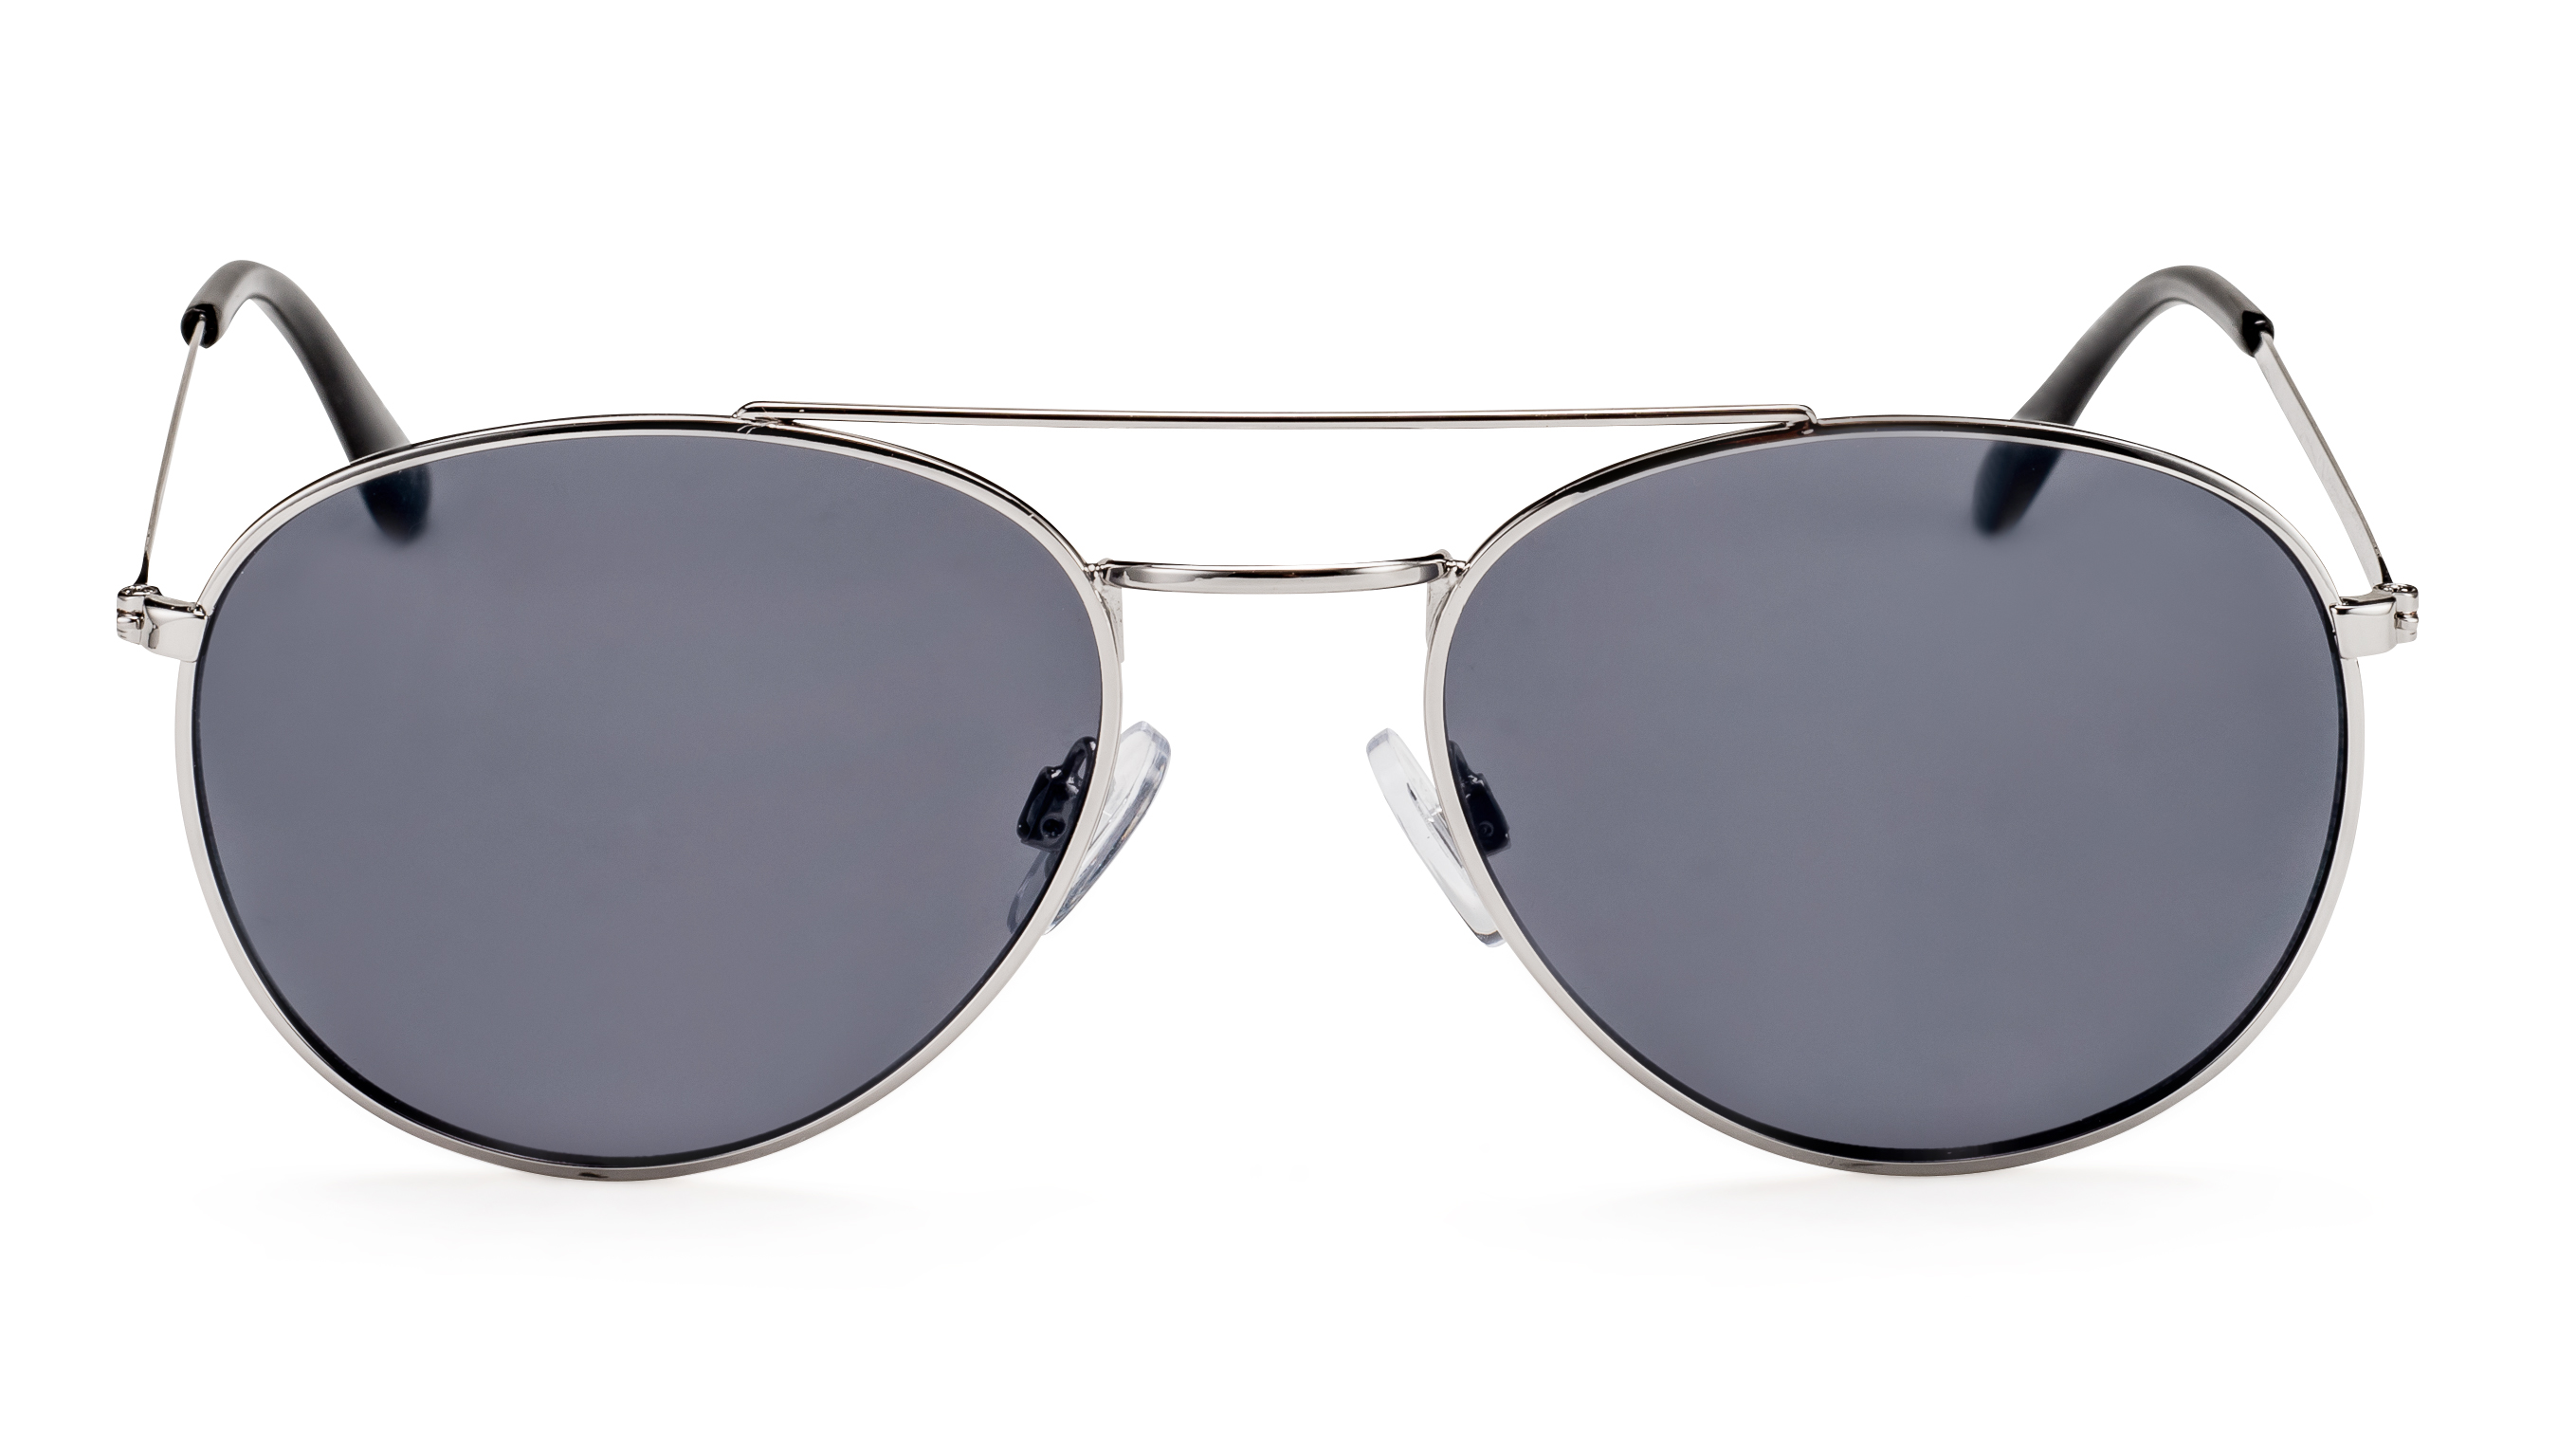 Front view sunglasses 3021199